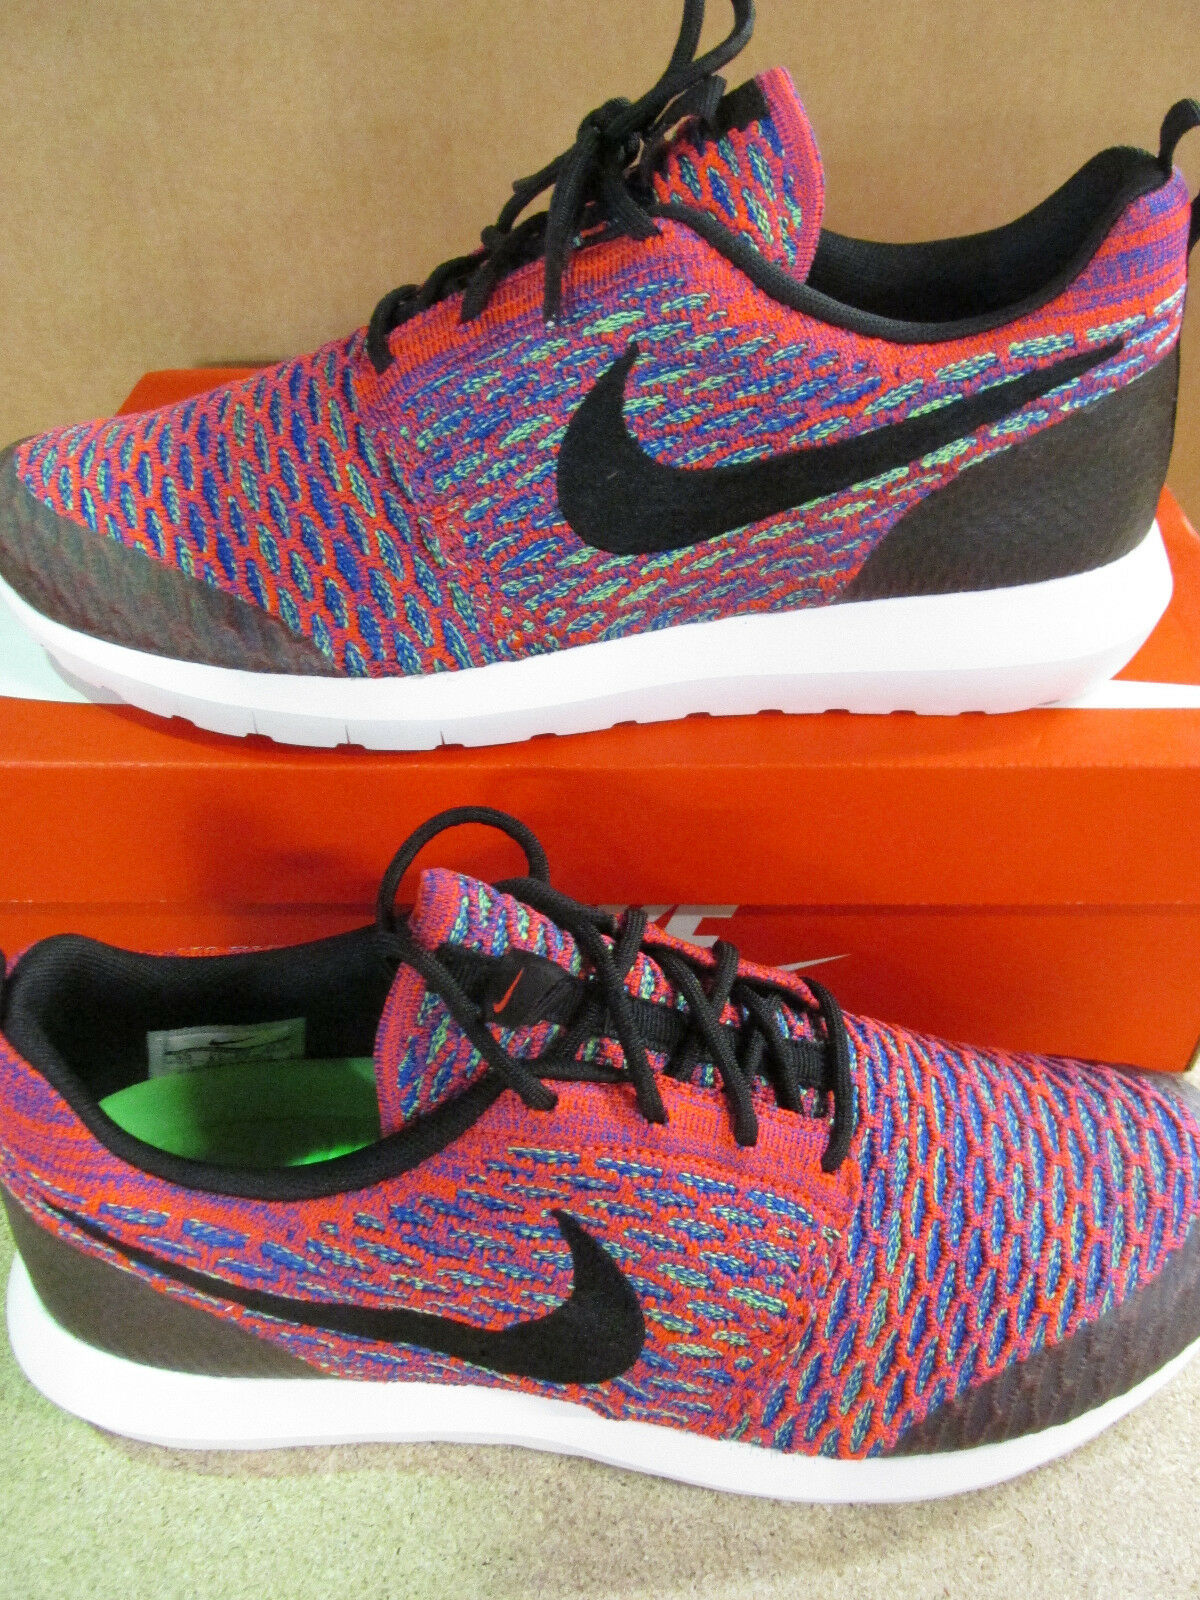 f5a0992ce4 Nike Roshe NM Flyknit Running Trainers 816531 600 Sneakers shoes Mens SE  nccbdx1990-Athletic Shoes